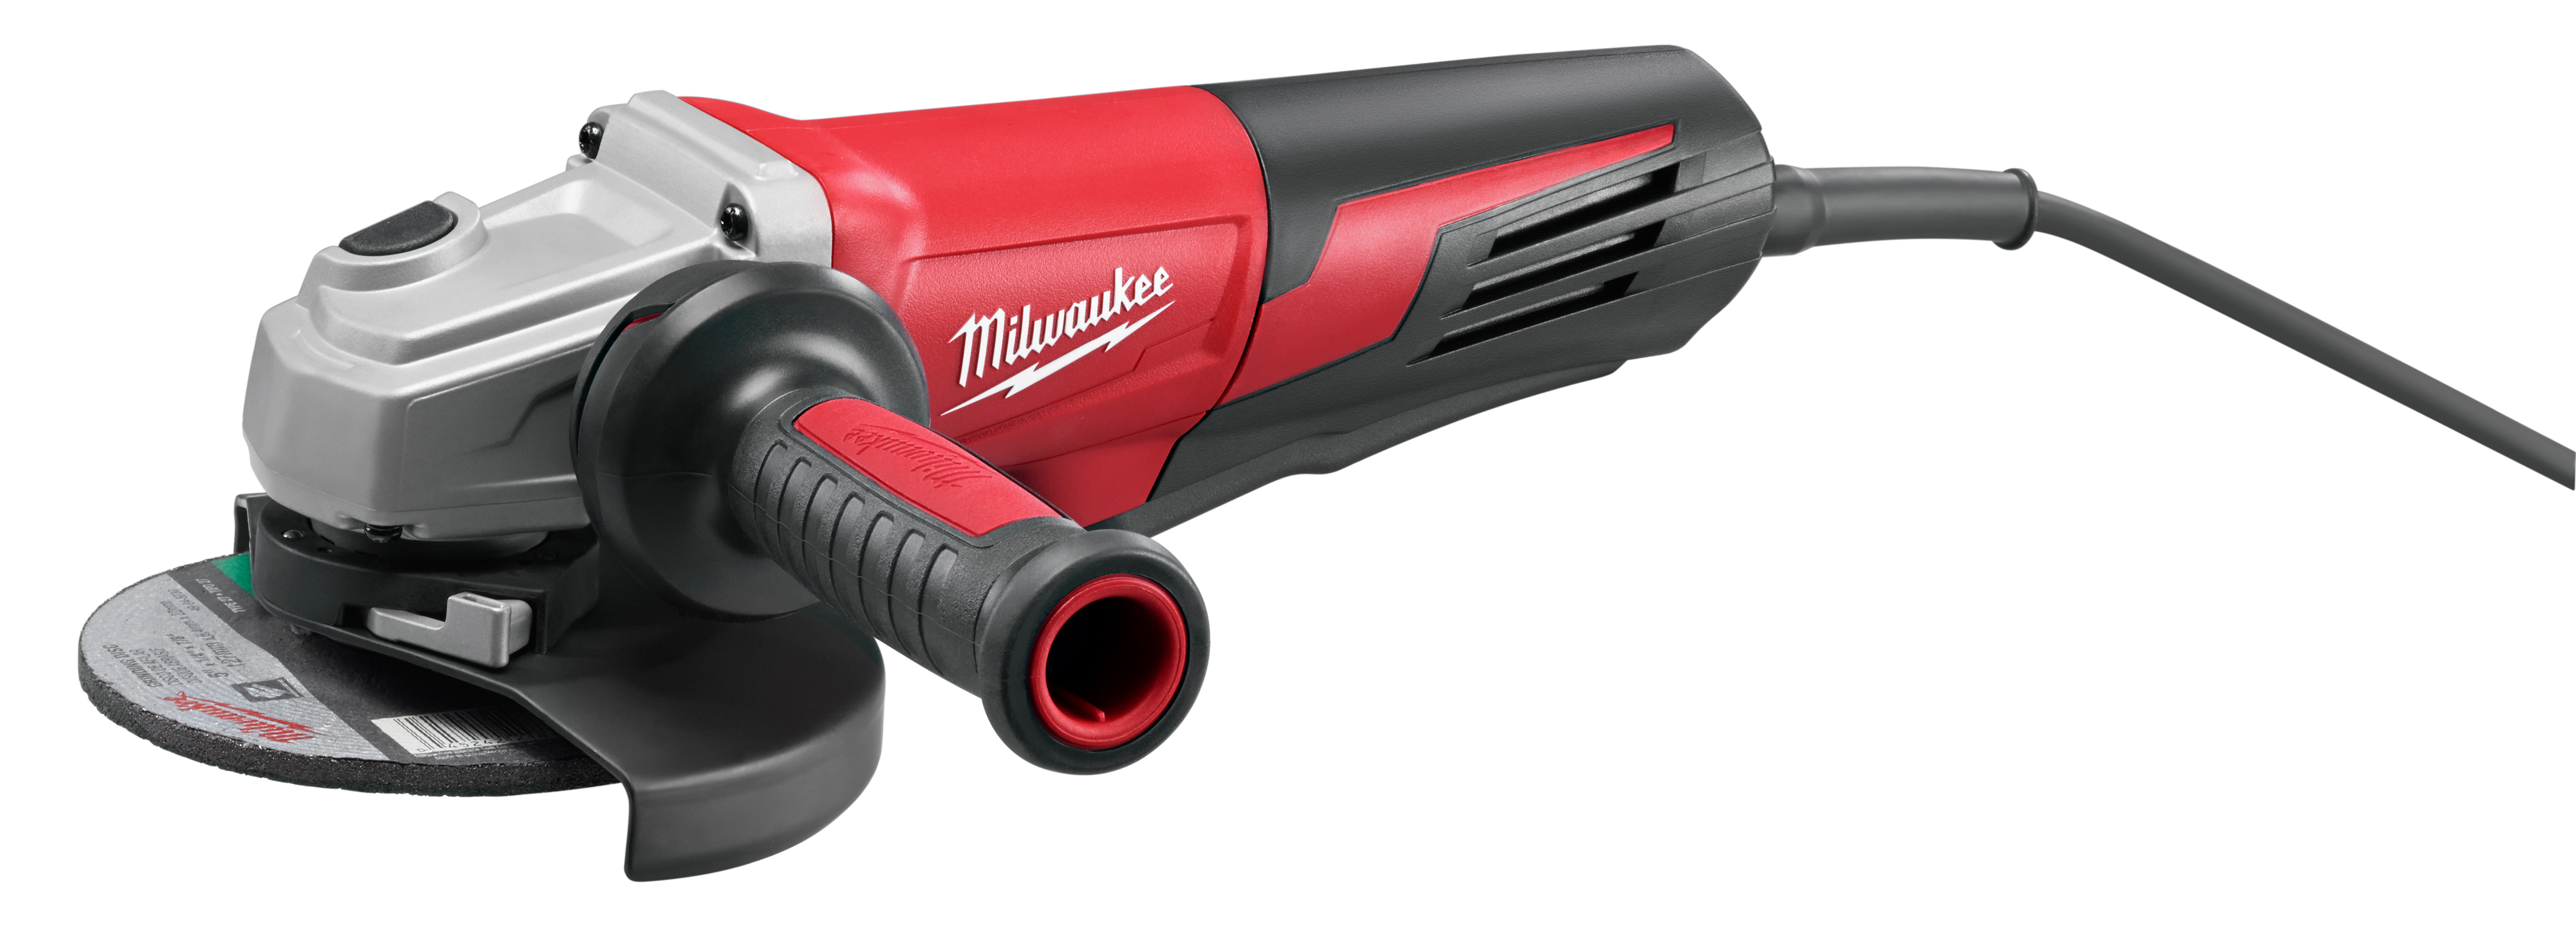 Milwaukee® 6161-30 Double Insulated Small Angle Grinder, 6 in Dia Wheel, 5/8-11 UNC Arbor/Shank, 120 VAC, Black/Red